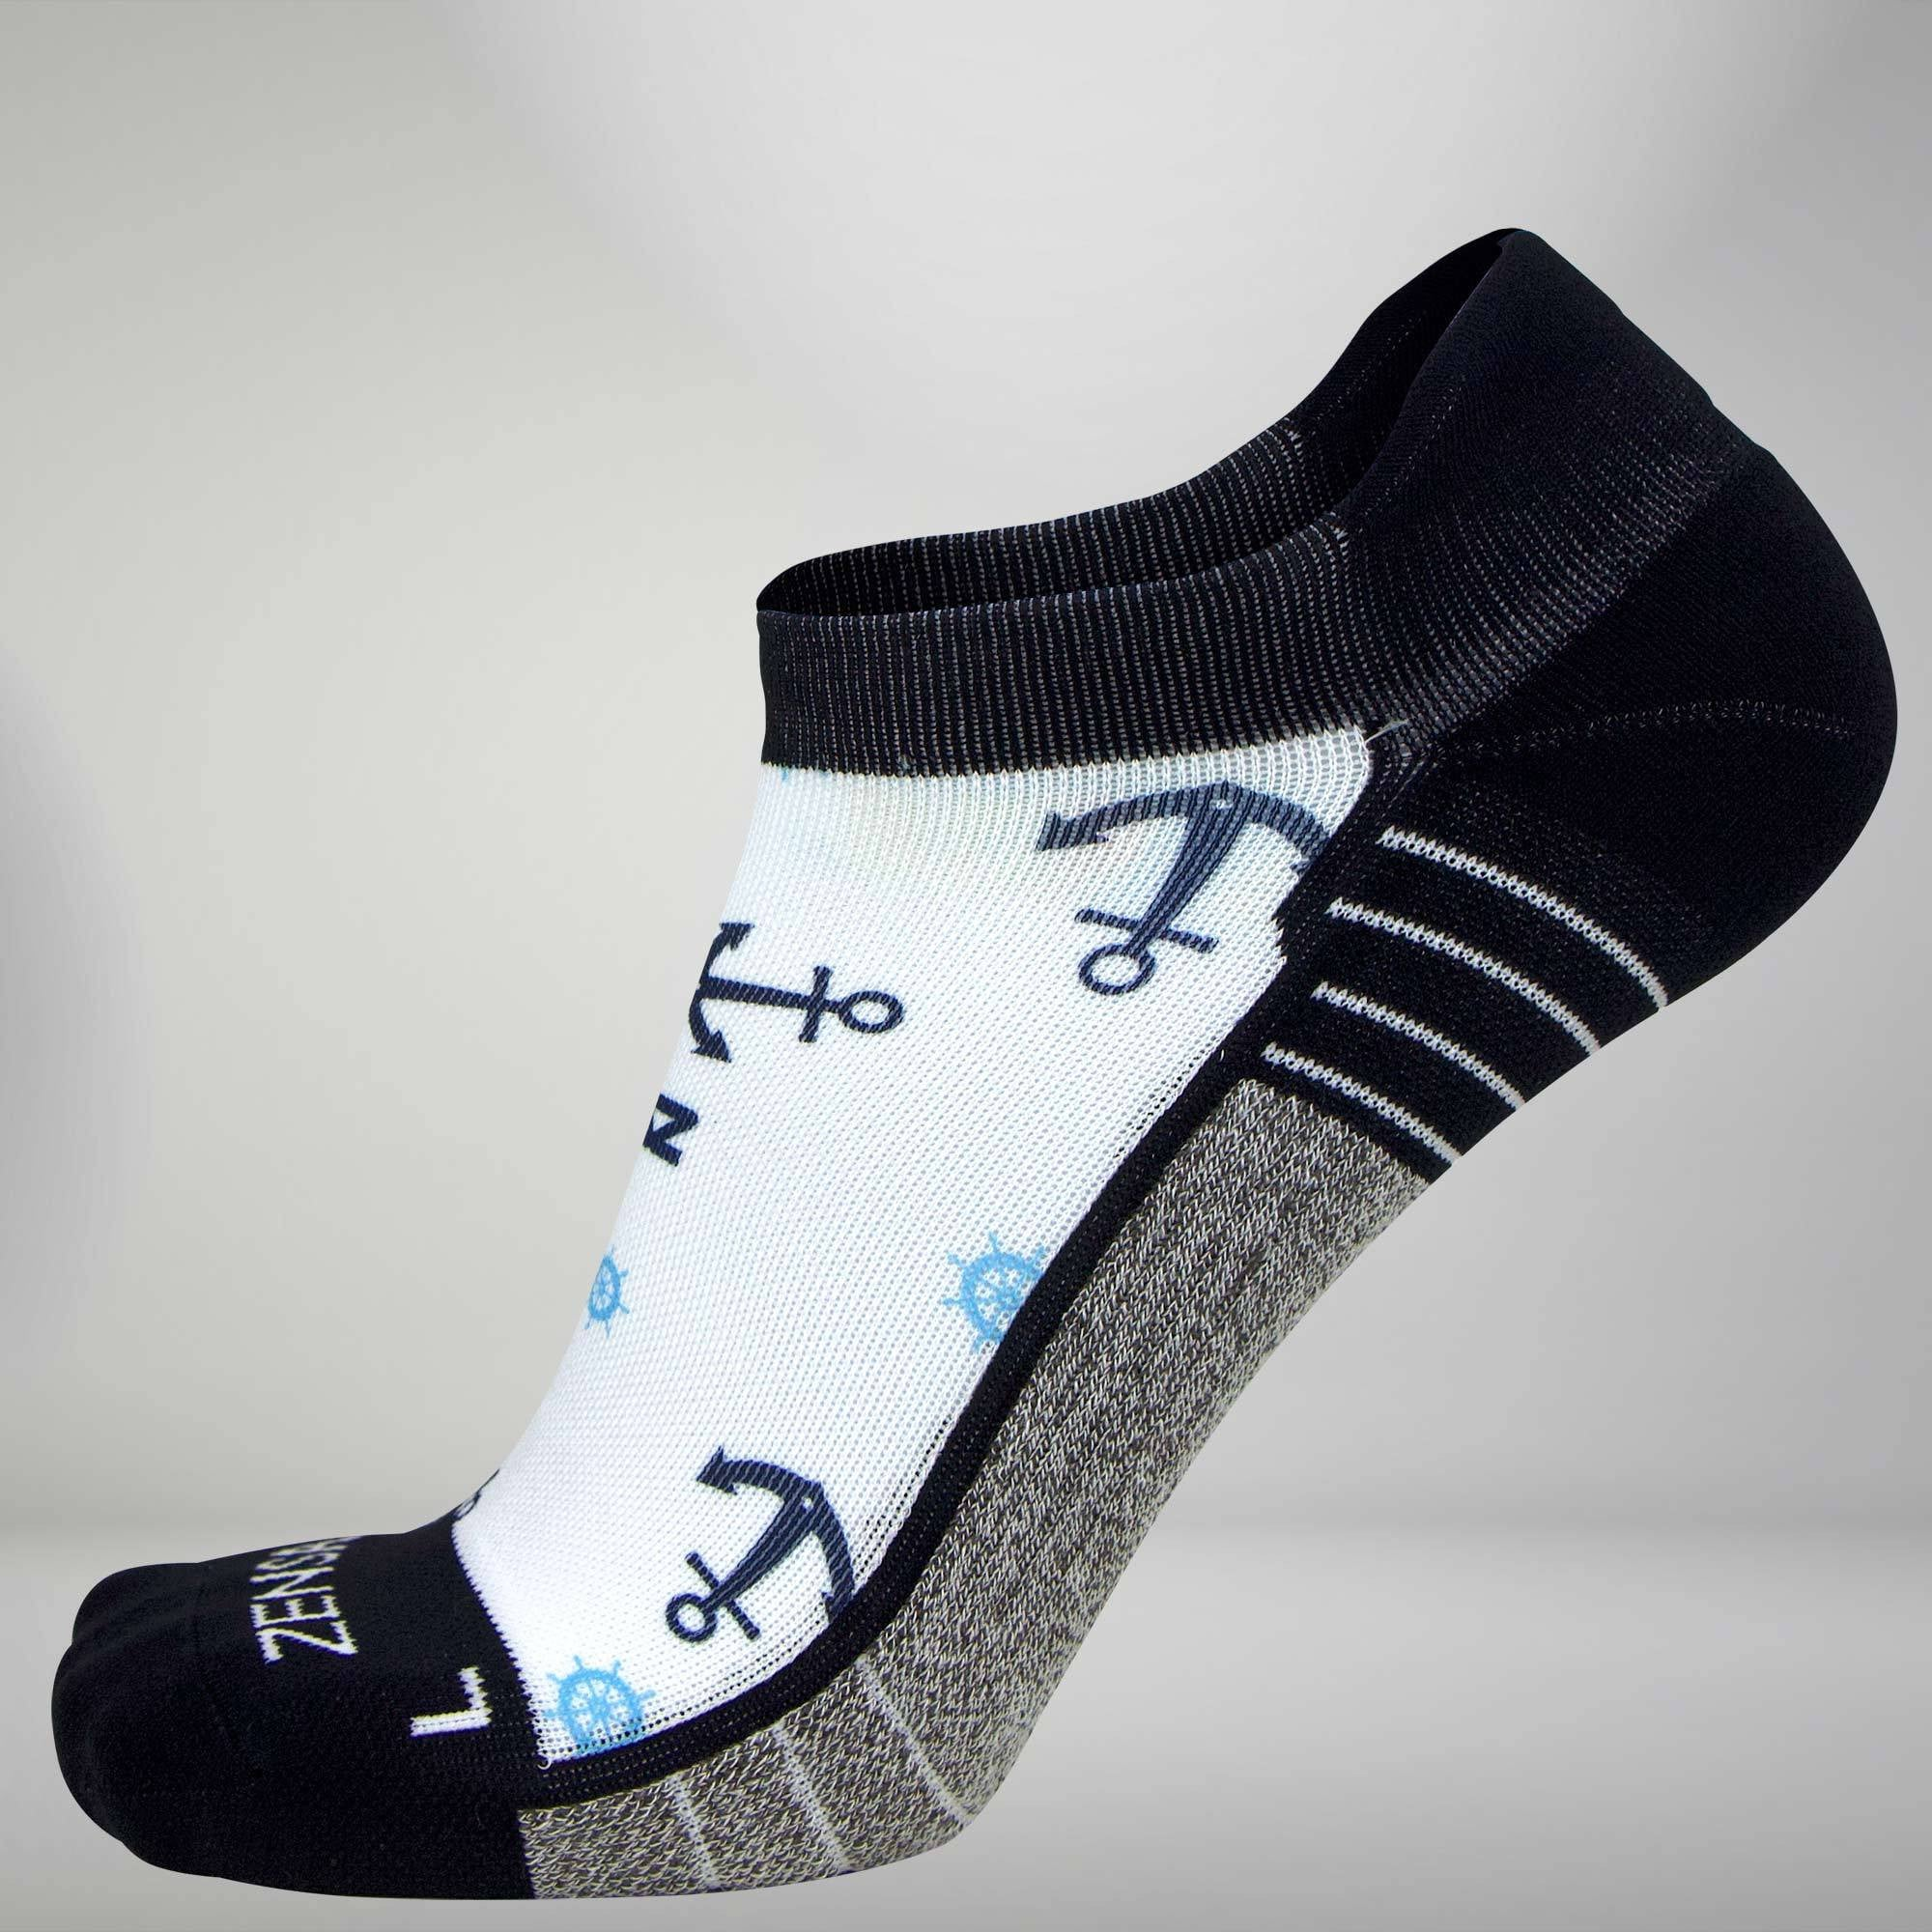 Anchors Socks (No Show)